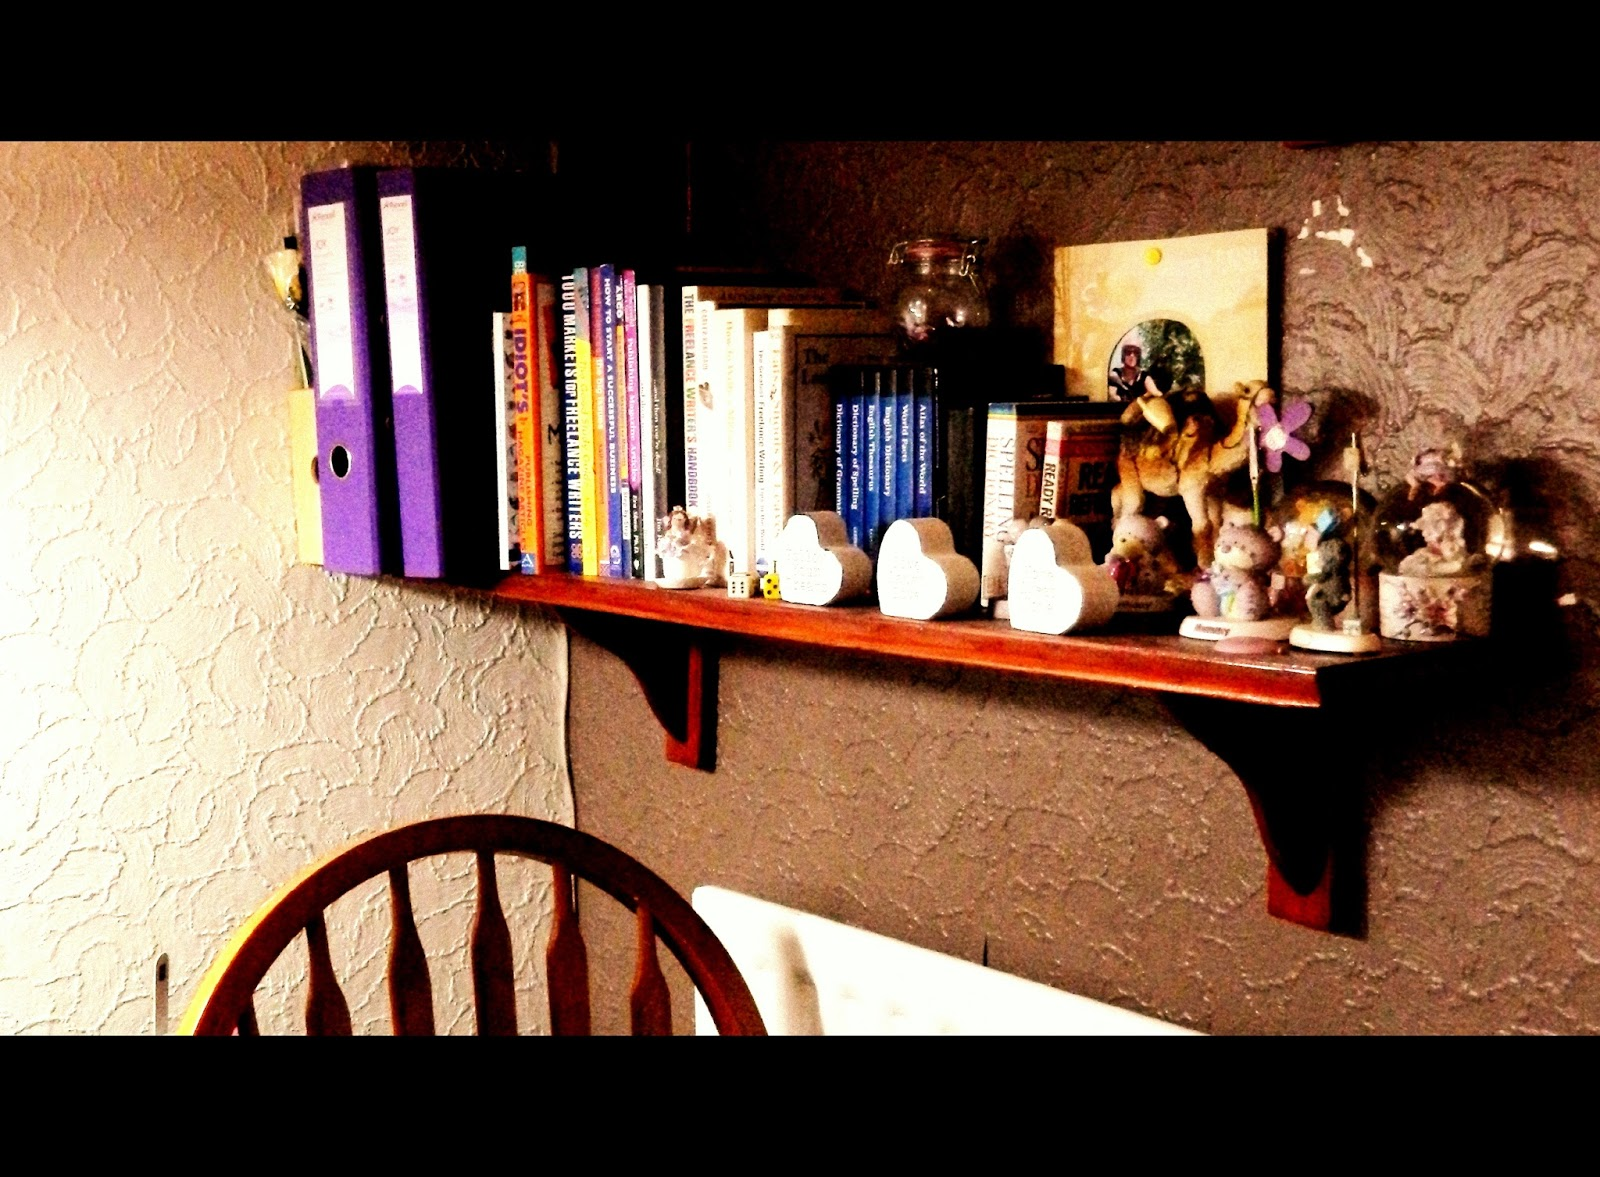 shelves, books, knick-knacks, keepsakes, memories